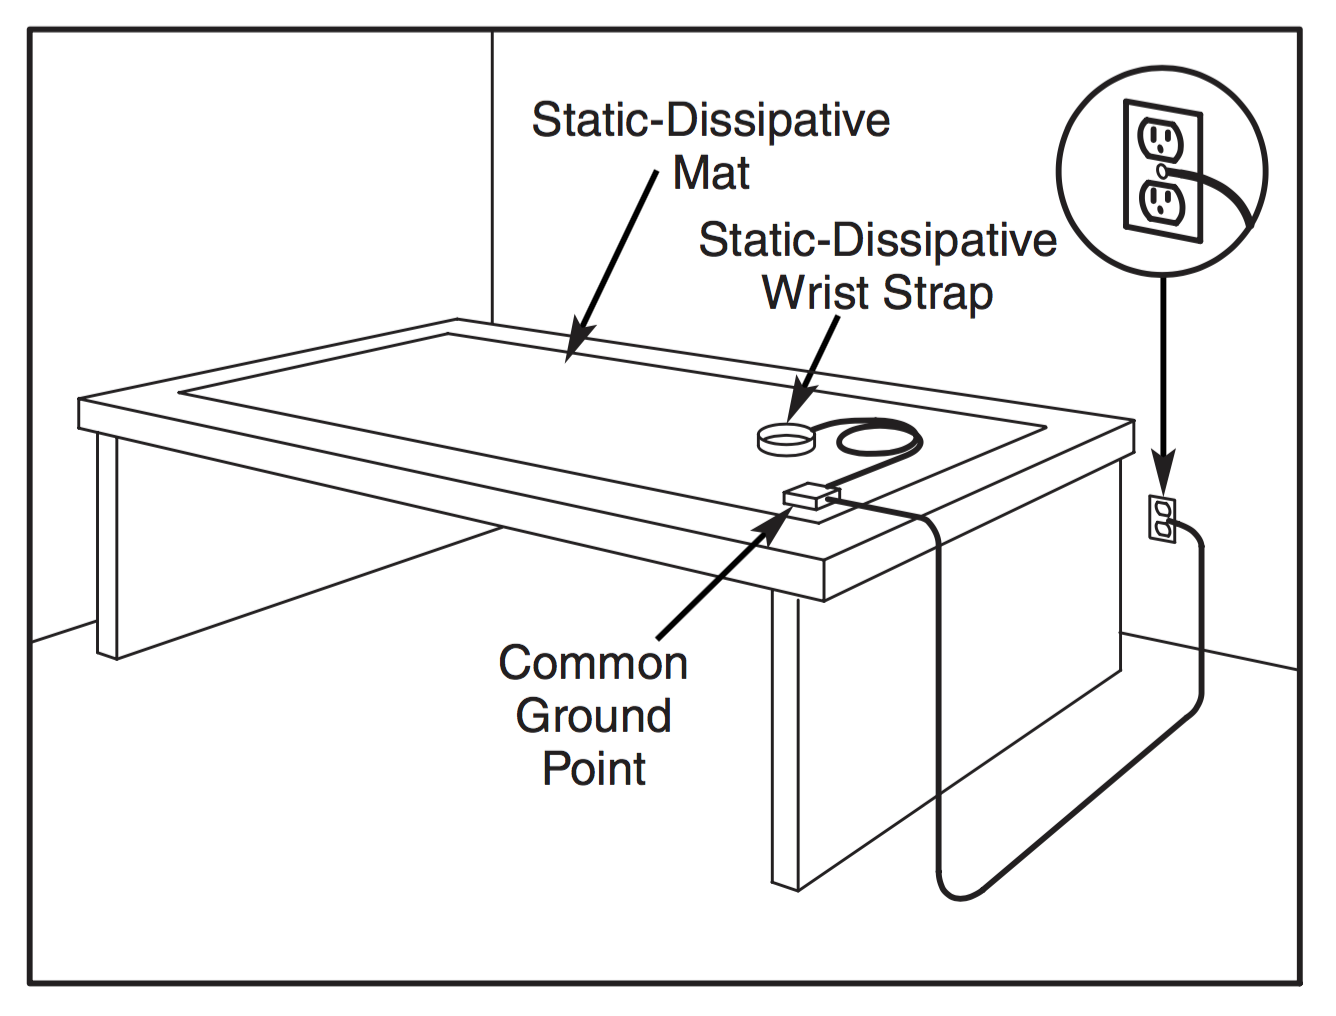 Electrostatic Discharge Precautions Dialogic Voice Cards Esd Wiring Diagram Find Latest Part Are Also An Integral Of The Staticsafe Workstation As With Wrist Strap It Is Necessary For Work Surface To Be Clean And Properly Grounded